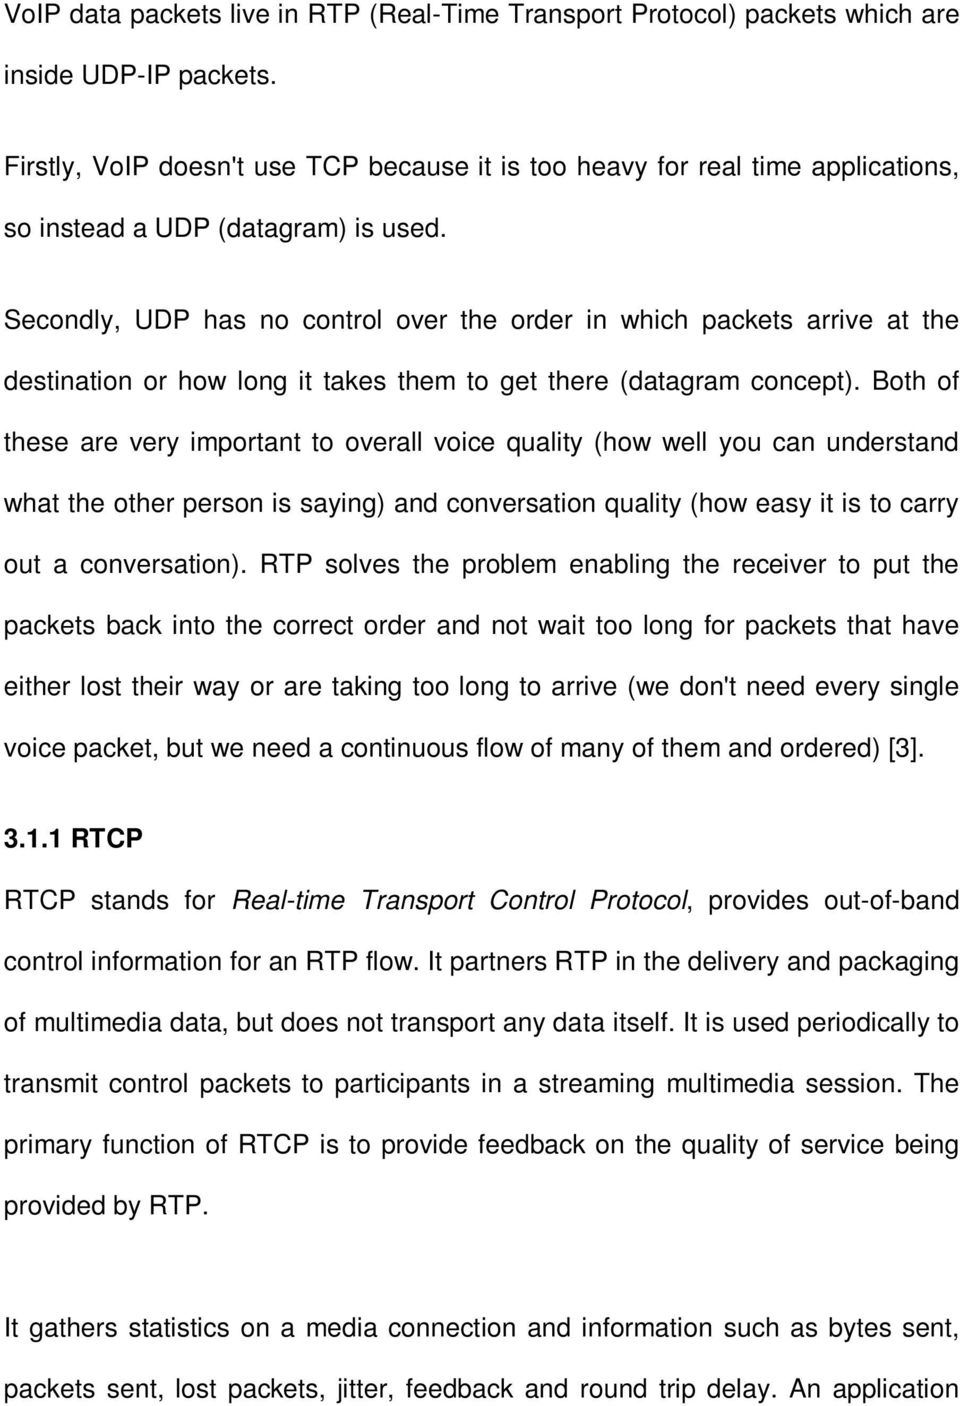 Secondly, UDP has no control over the order in which packets arrive at the destination or how long it takes them to get there (datagram concept).